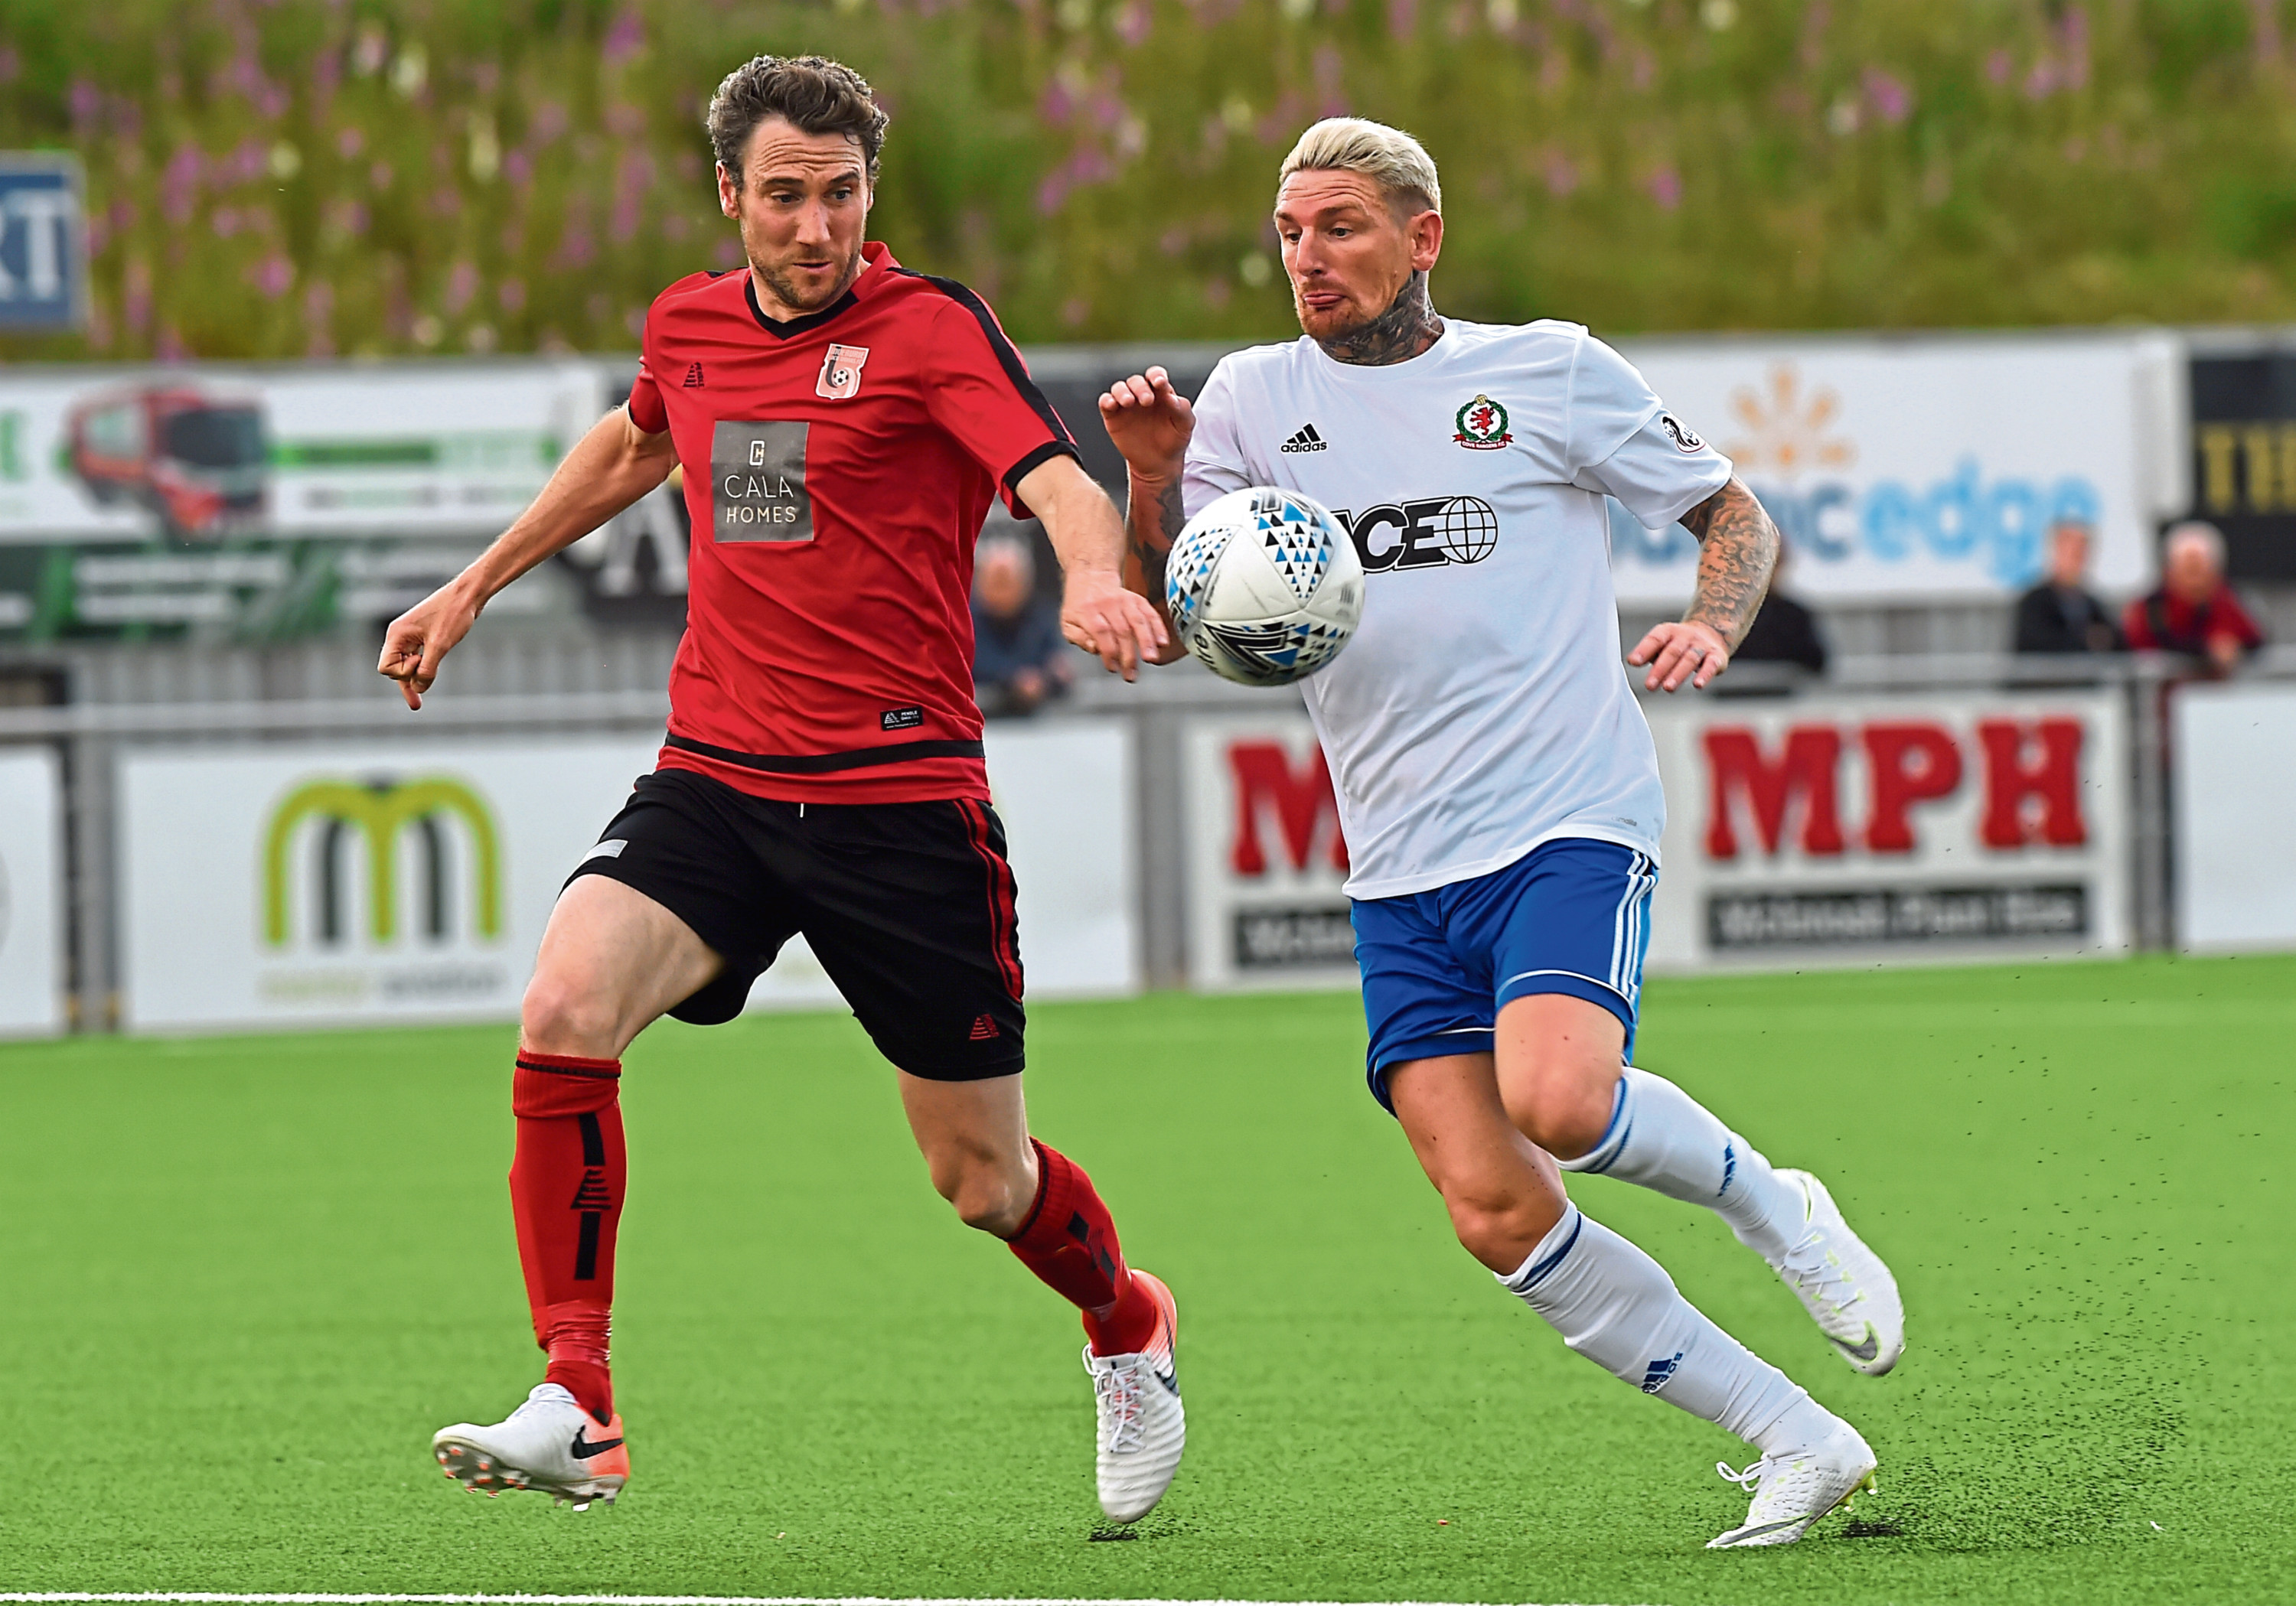 Ryan Broadhurst, left, in action for Inverurie Locos  Picture by KENNY ELRICK